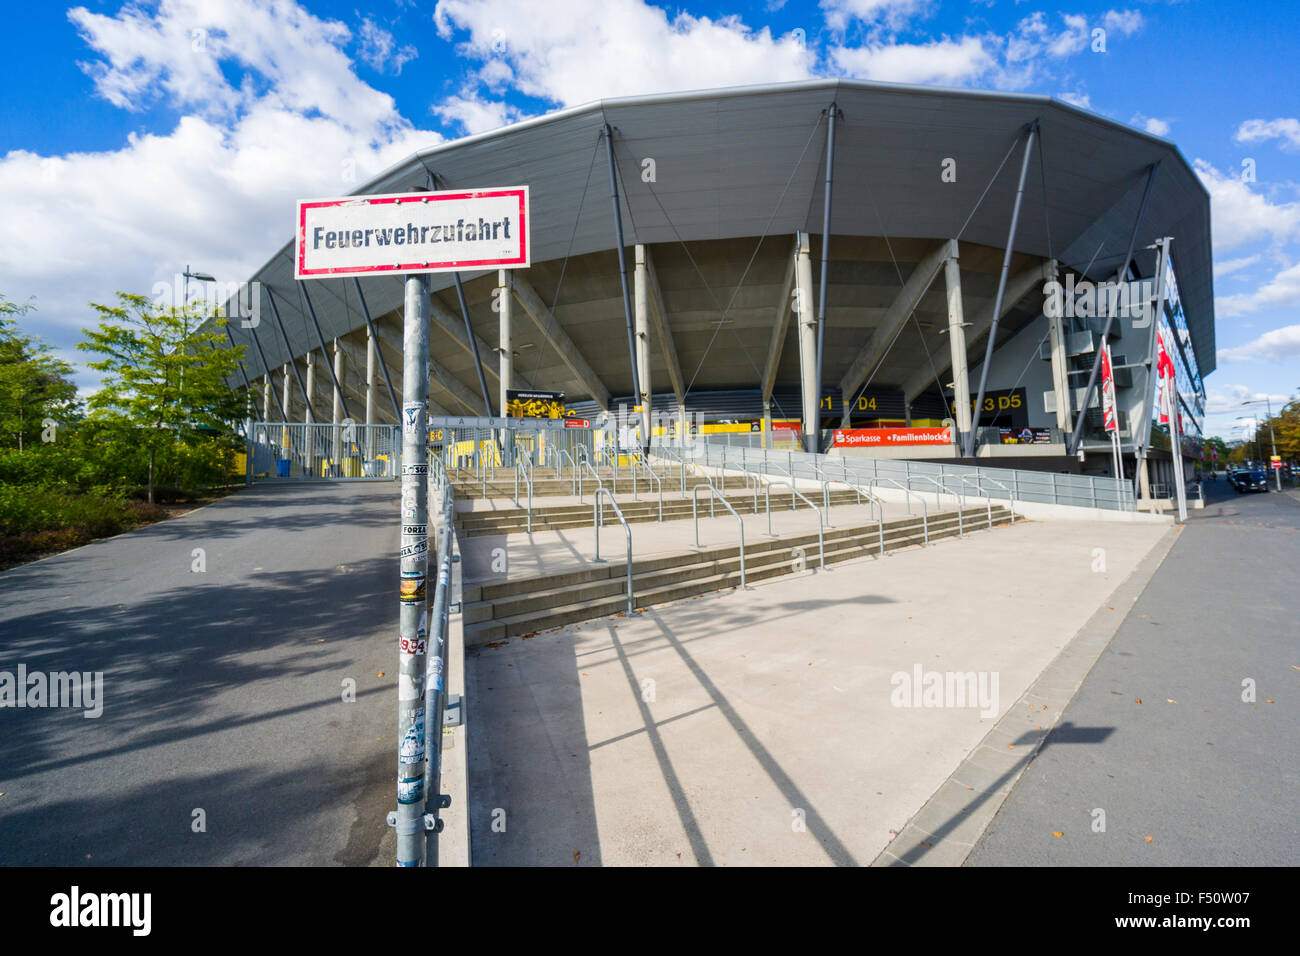 Outside view of the stadion of the football team Dynamo Dresden - Stock Image